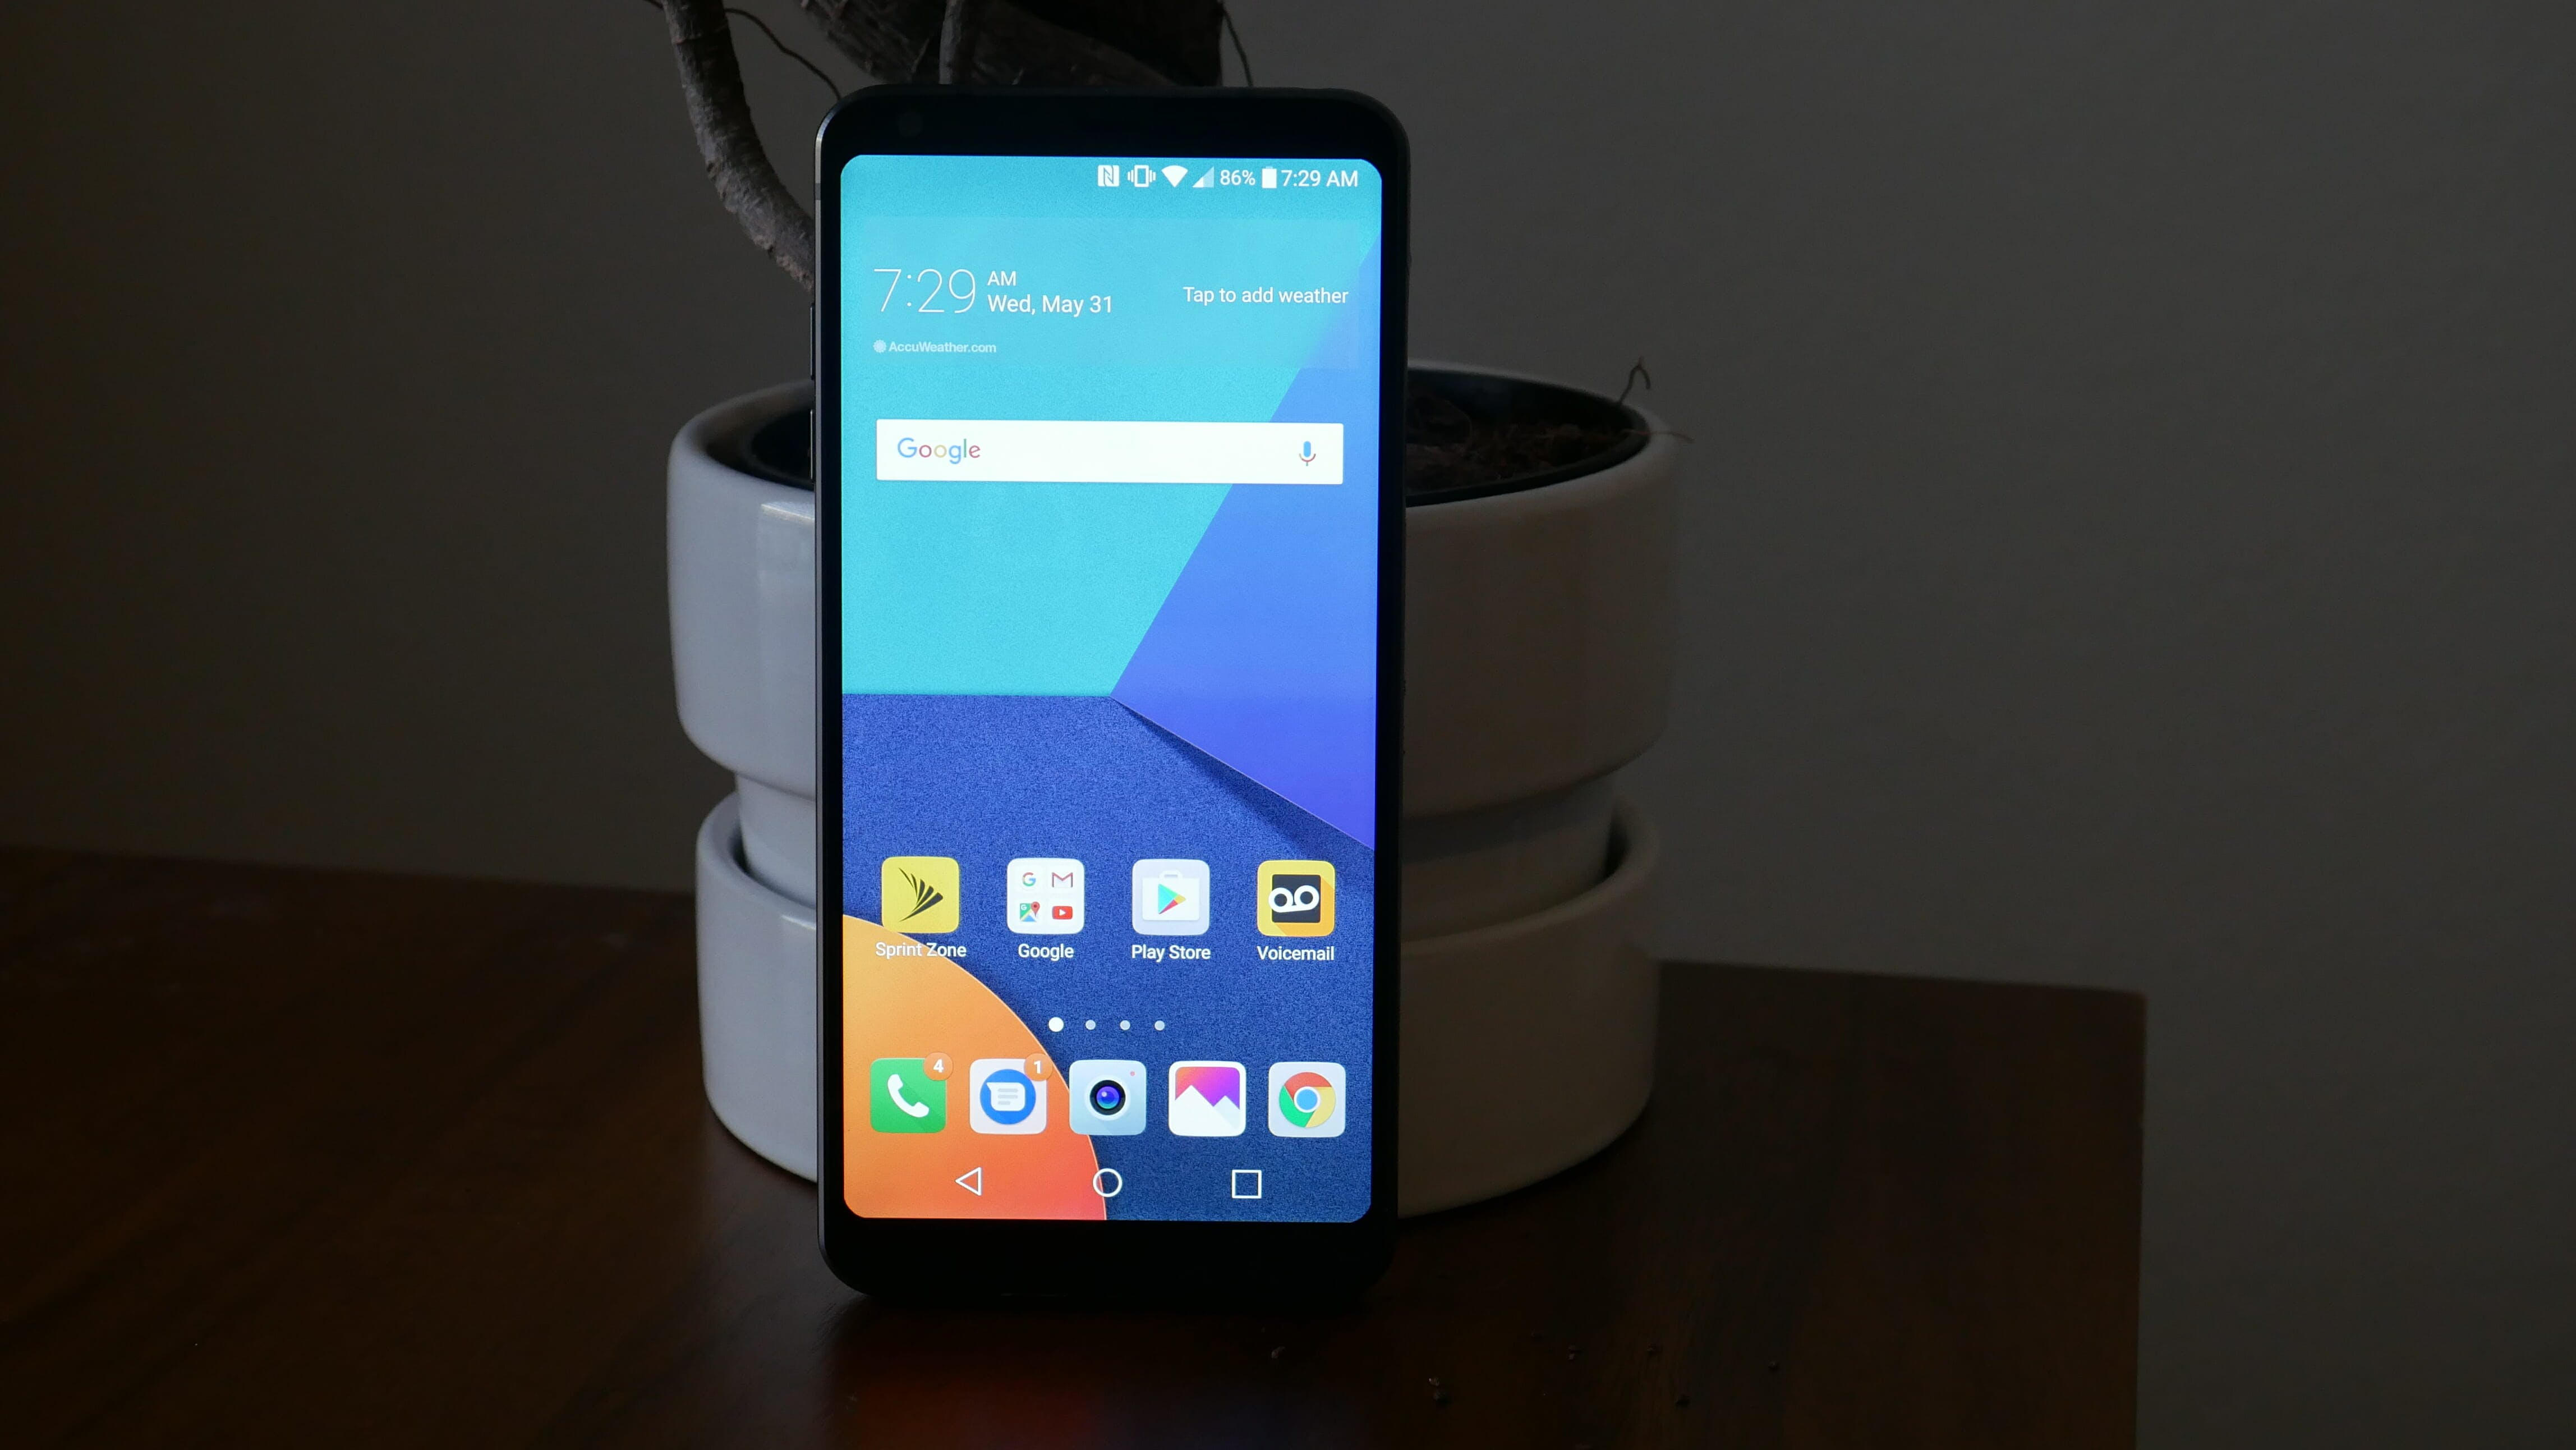 lg g6 smartphone best cheap android phone